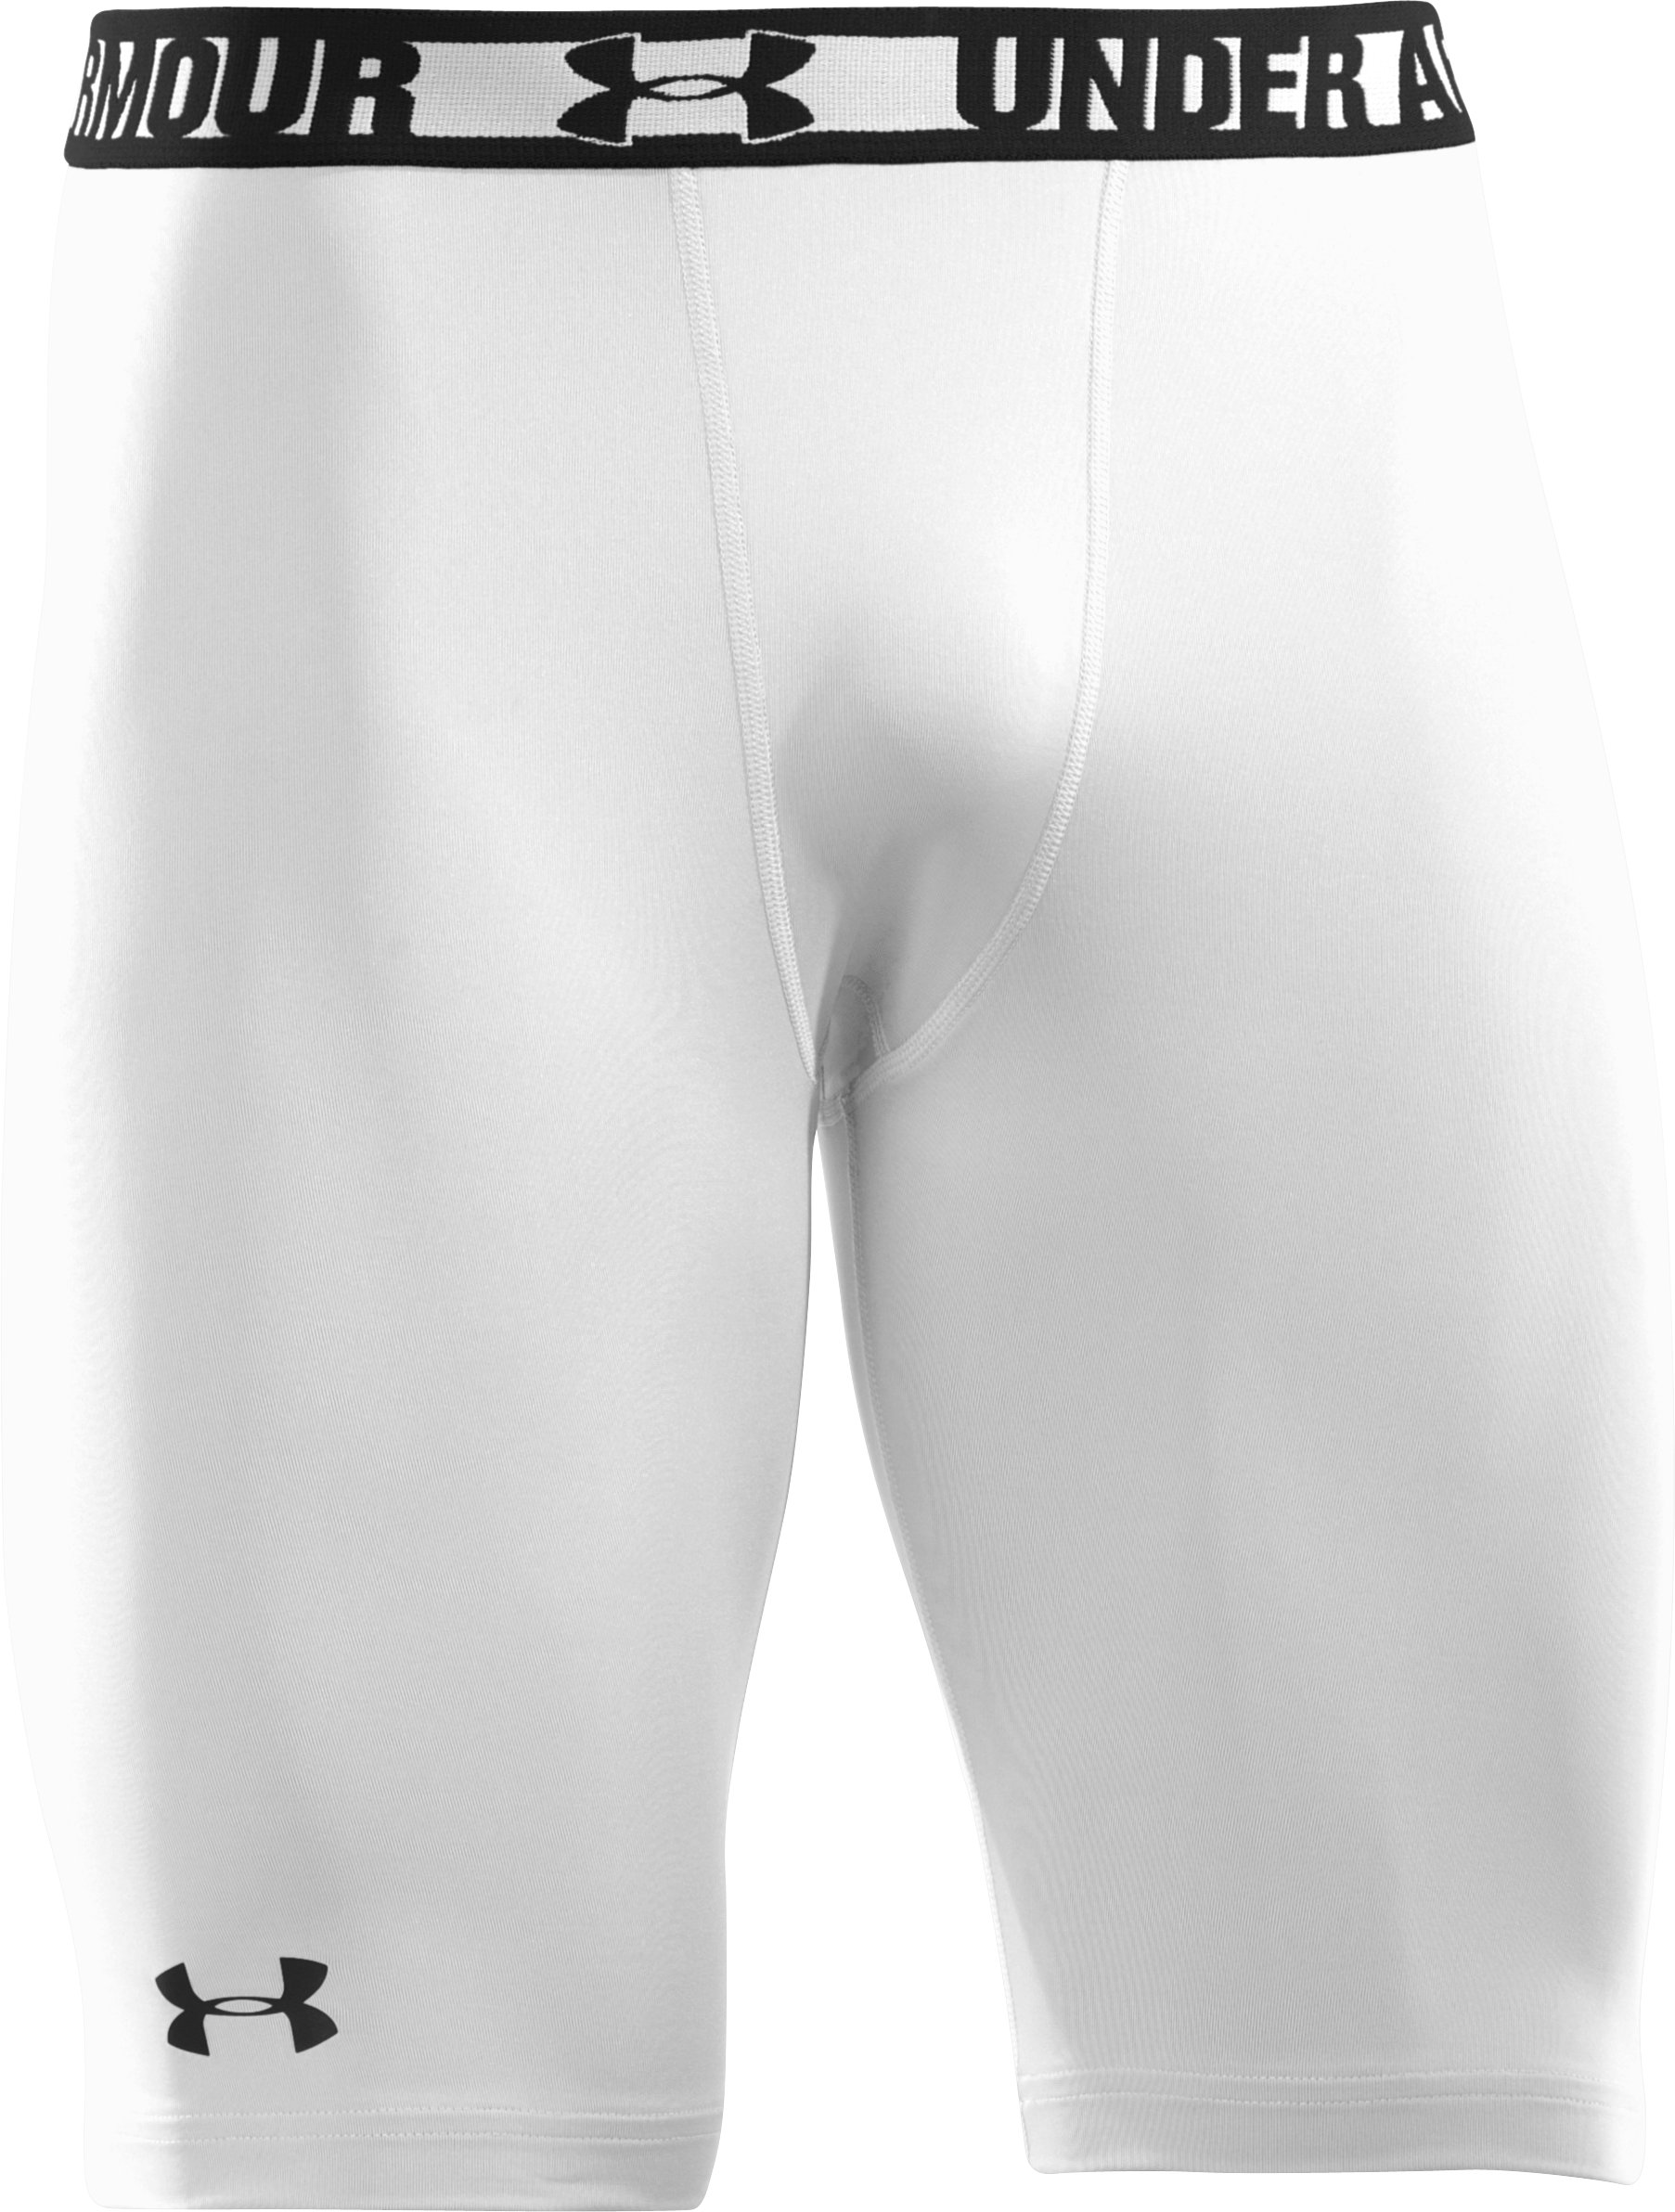 Men's HeatGear® Sonic Long Compression Shorts, White